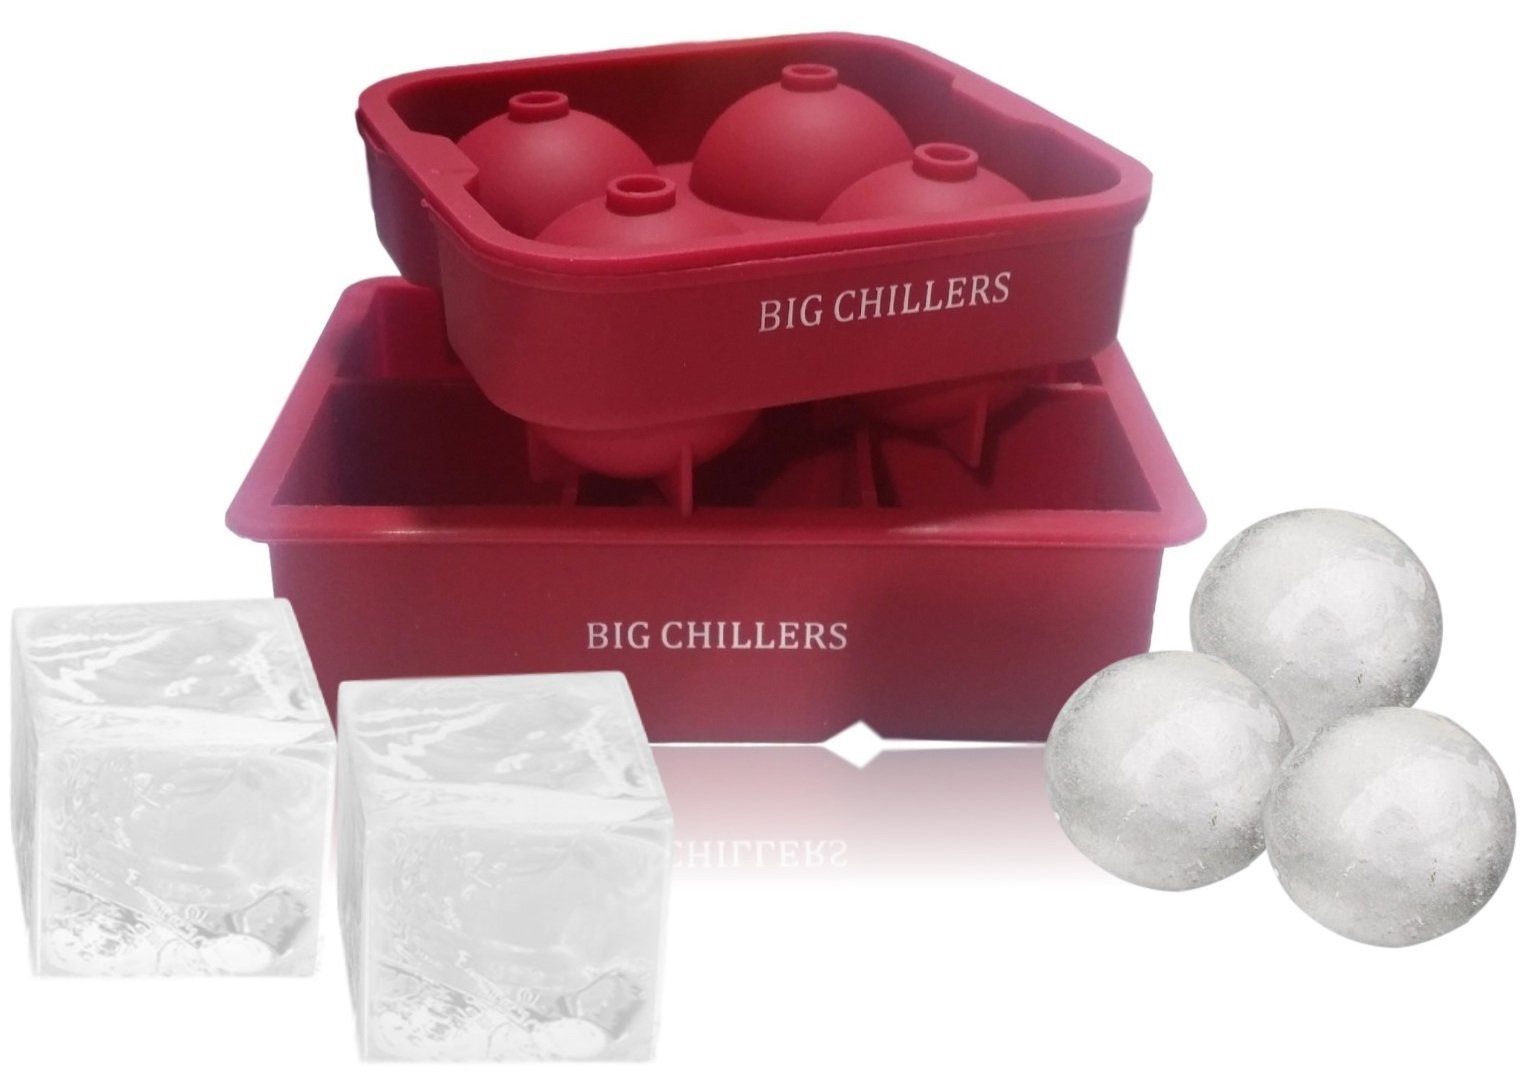 Ice Ball Maker and Cube Mold Trays Silicone - BPA Free - Combo Large Square and Sphere Round Silicone Molds Shapes for Whiskey Ice, Cocktails, Beverages